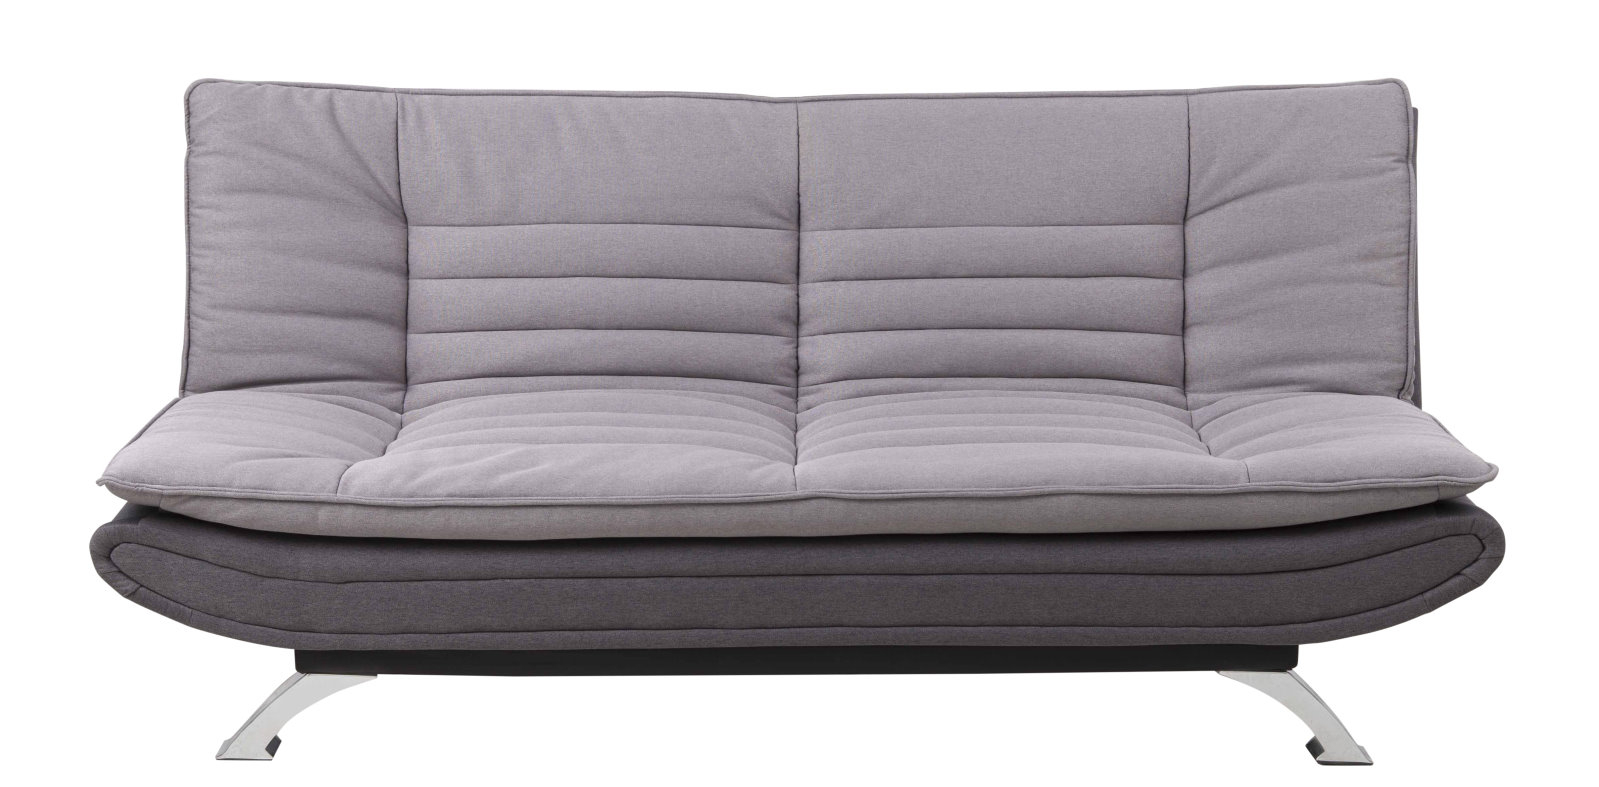 pkline schlafsofa fanny in grau schlafcouch funktionssofa. Black Bedroom Furniture Sets. Home Design Ideas